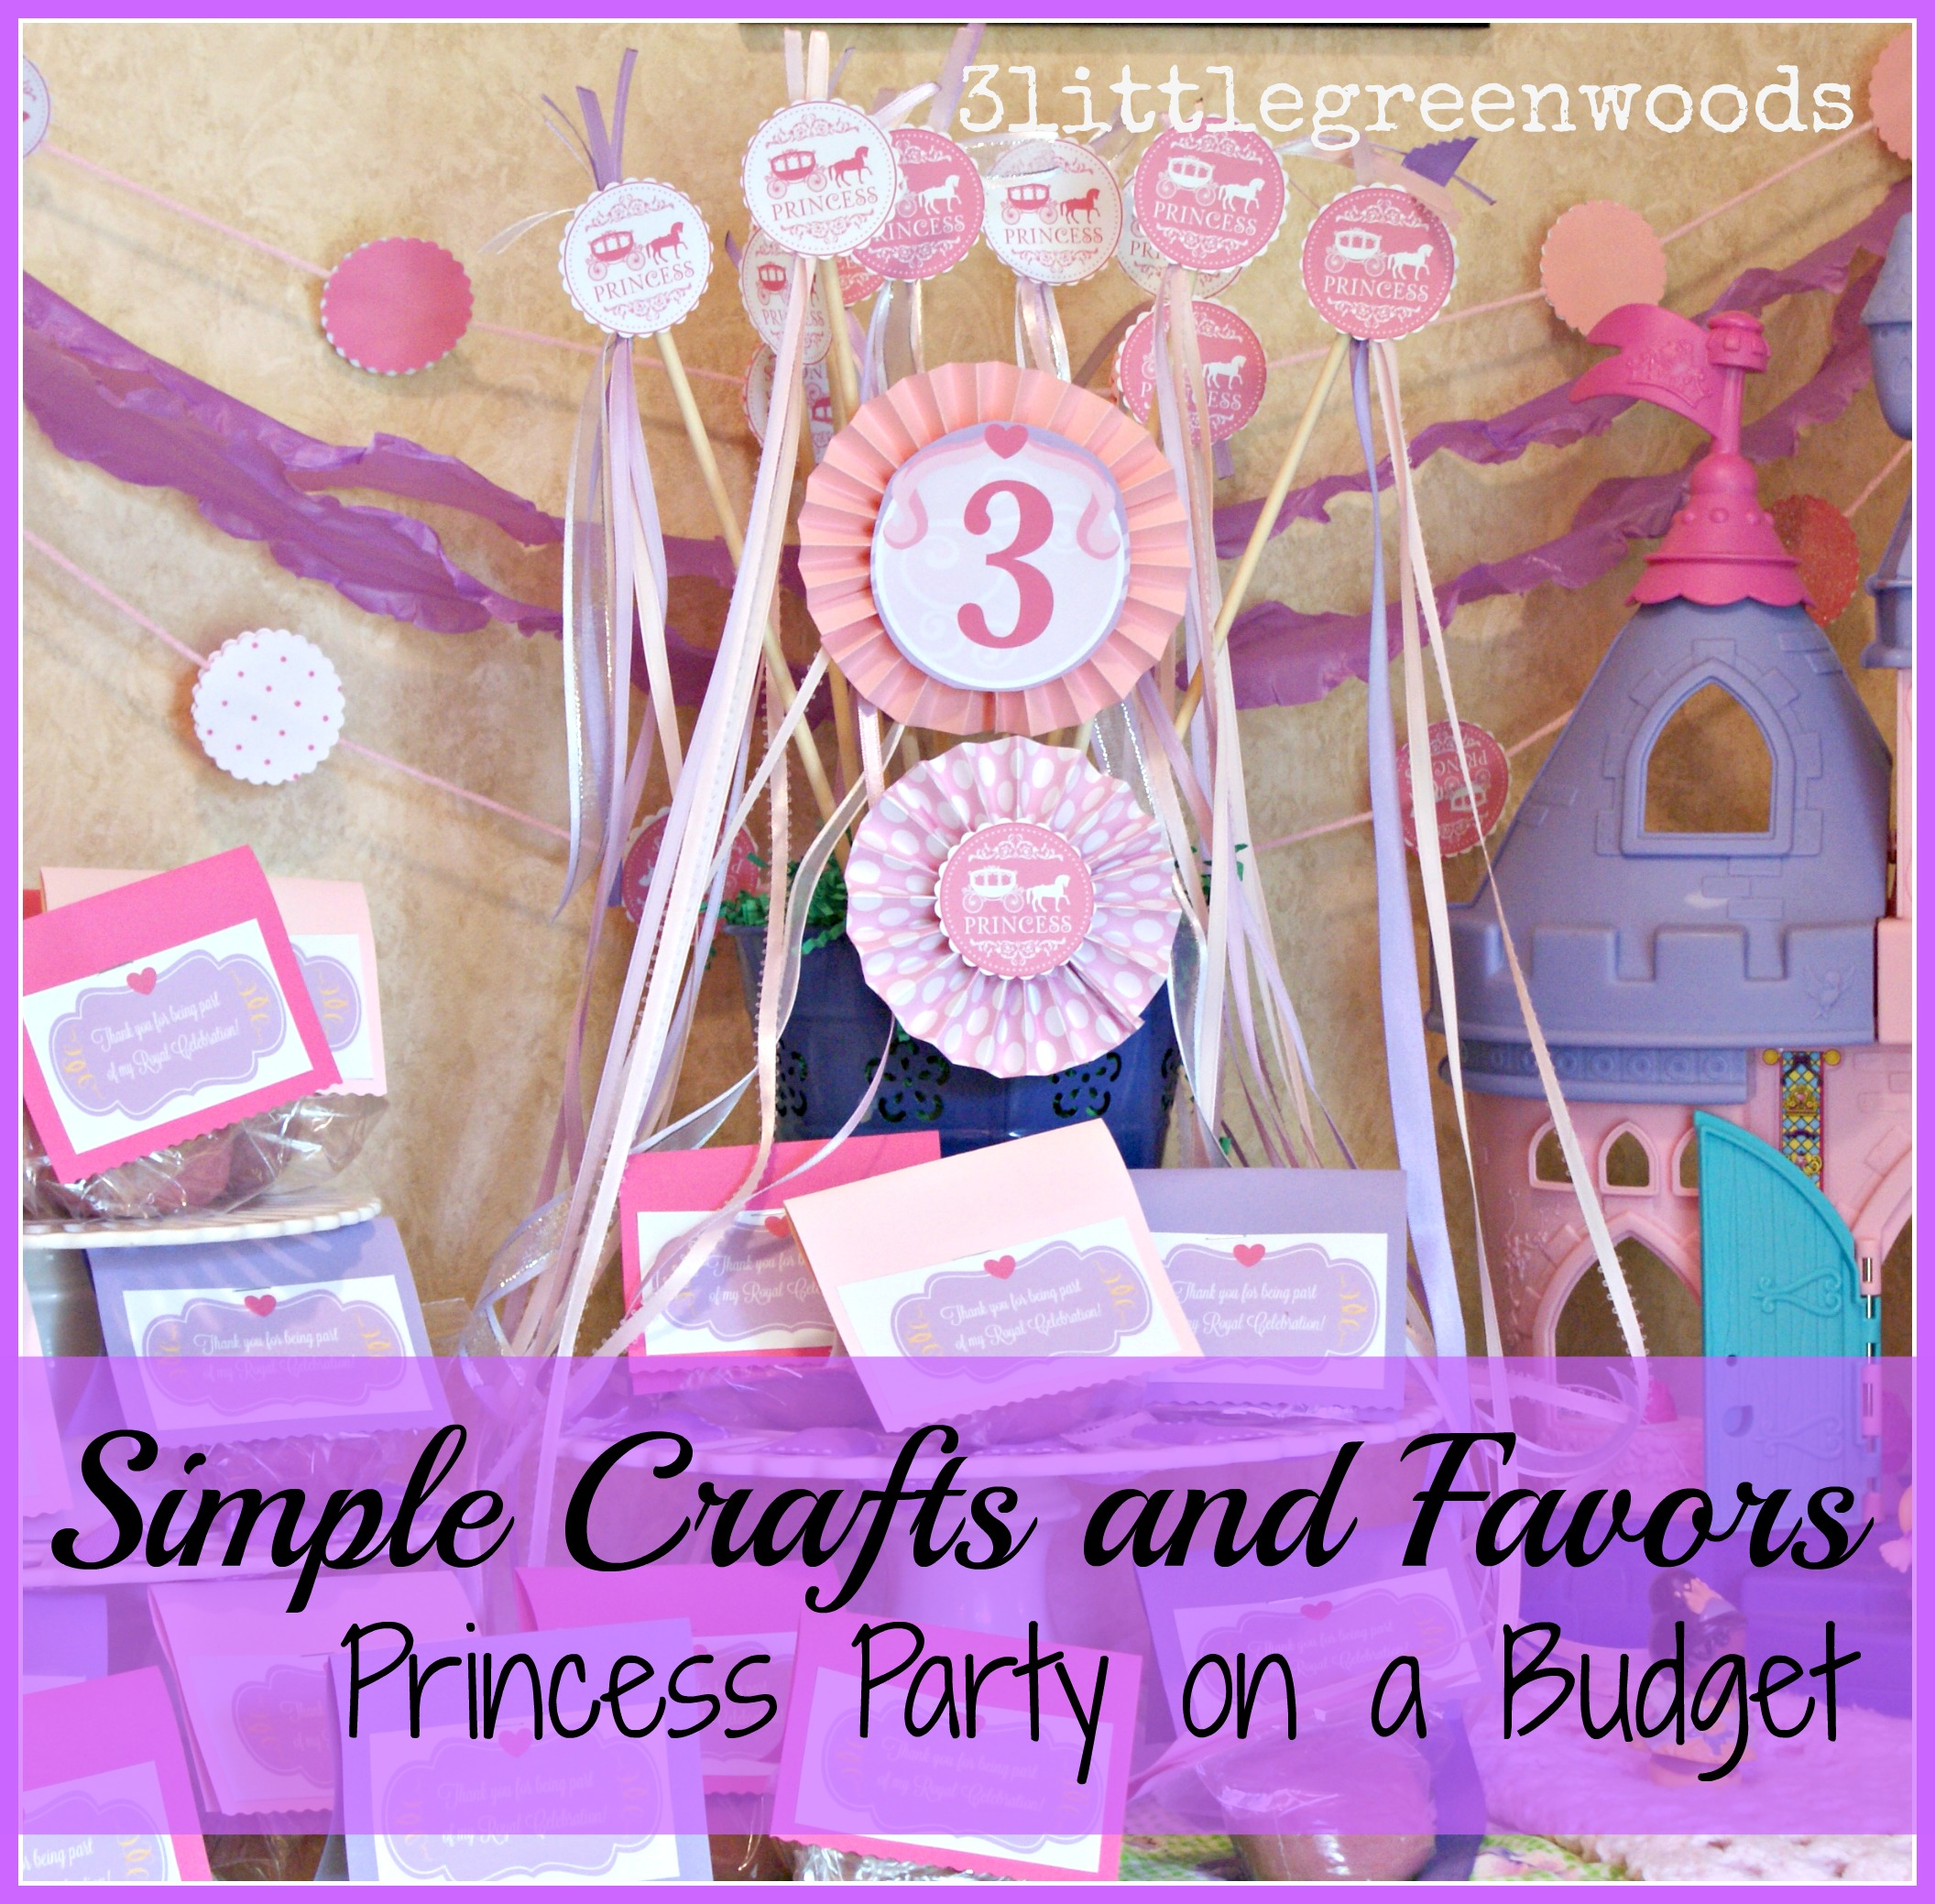 Diy Princess Party Decoration Ideas Part - 19: Sofia the First Princess Party on a Budget @ 3littlegreenwoods